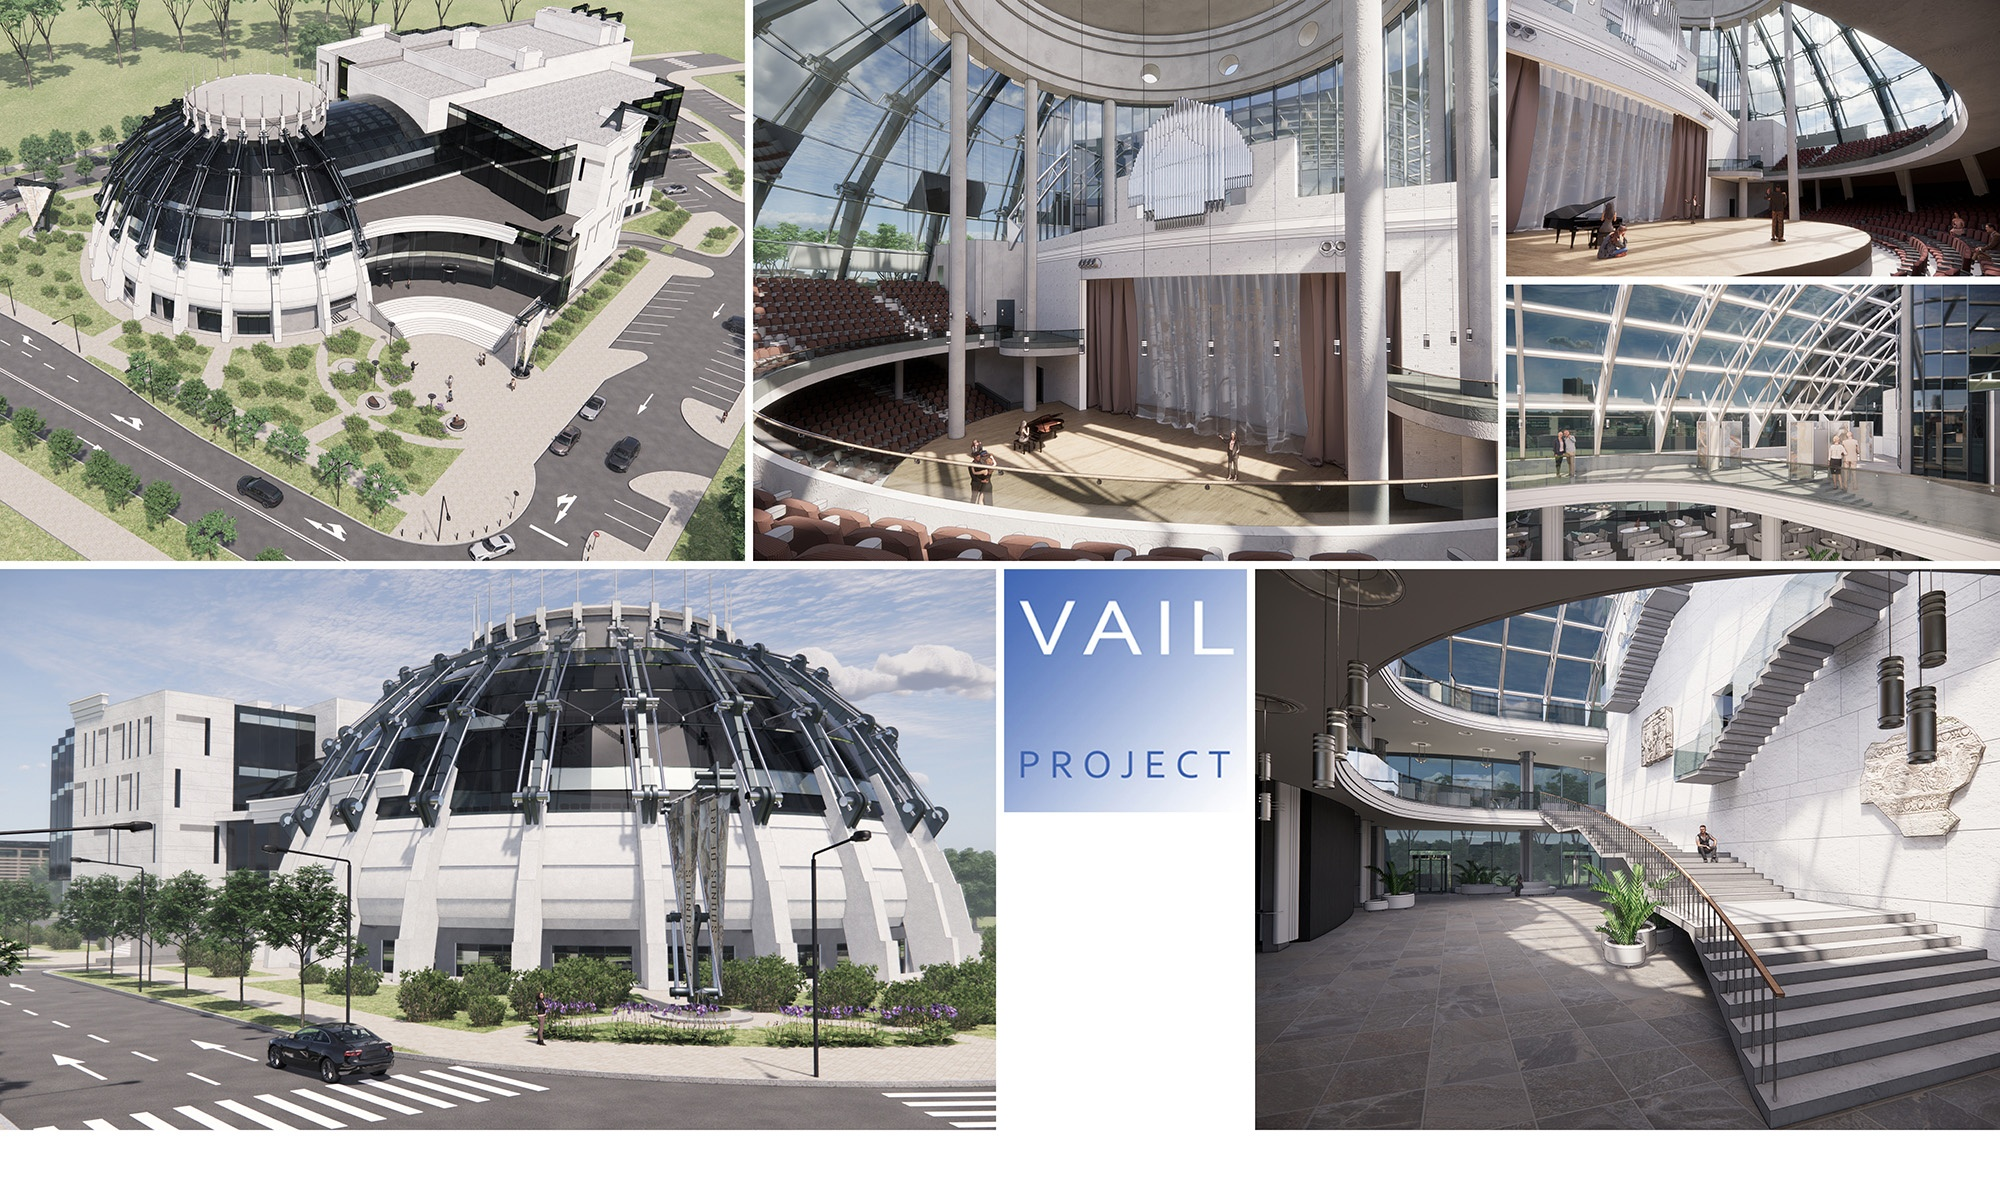 vail-project